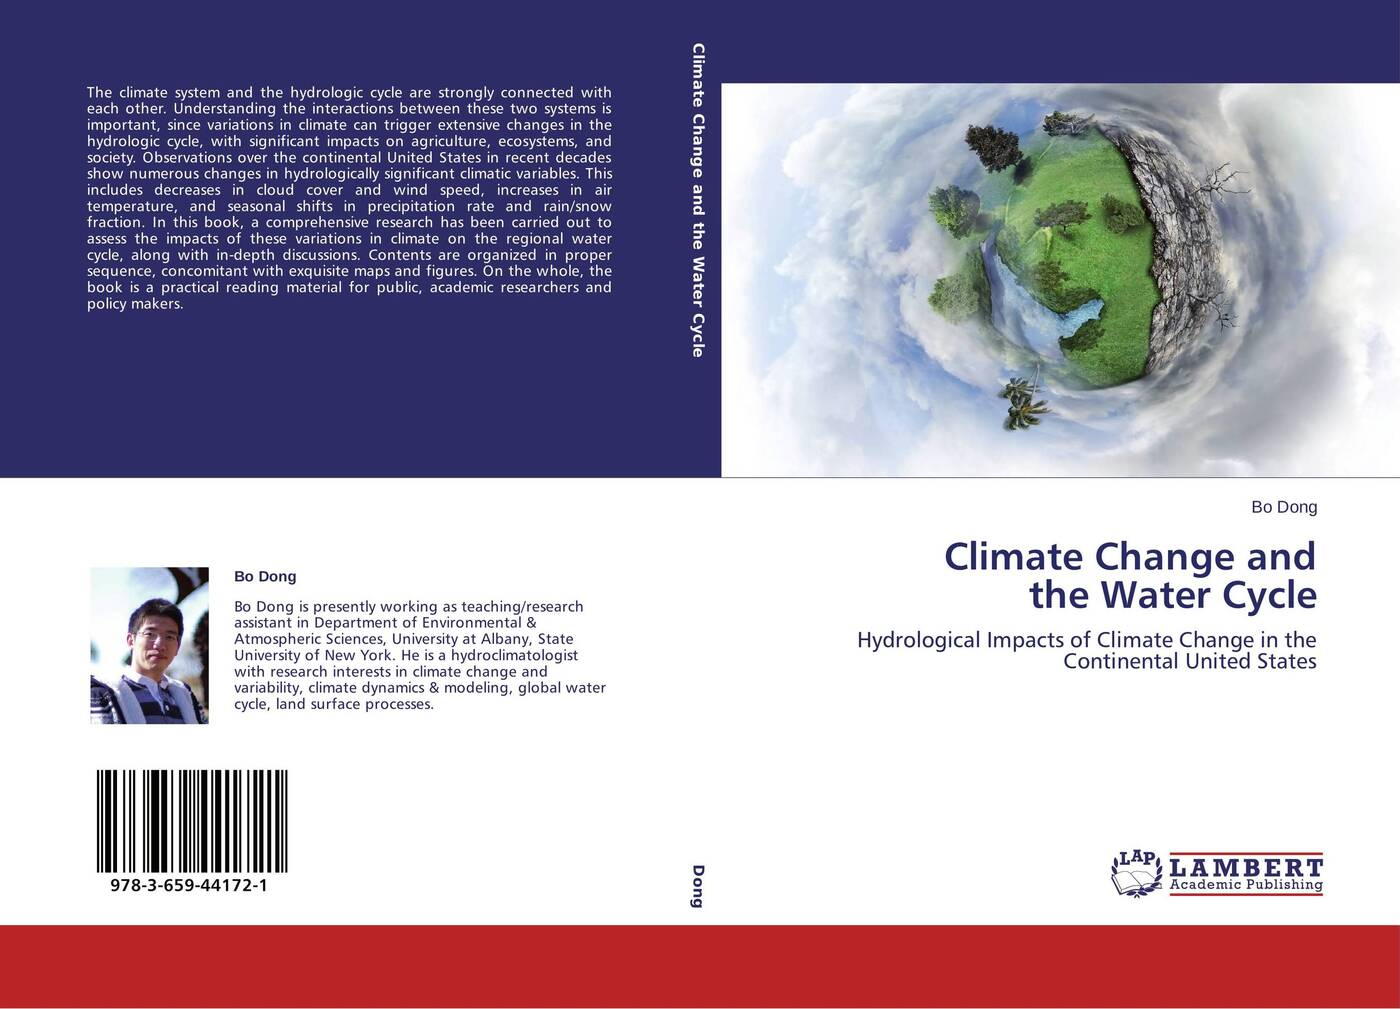 лучшая цена Bo Dong Climate Change and the Water Cycle